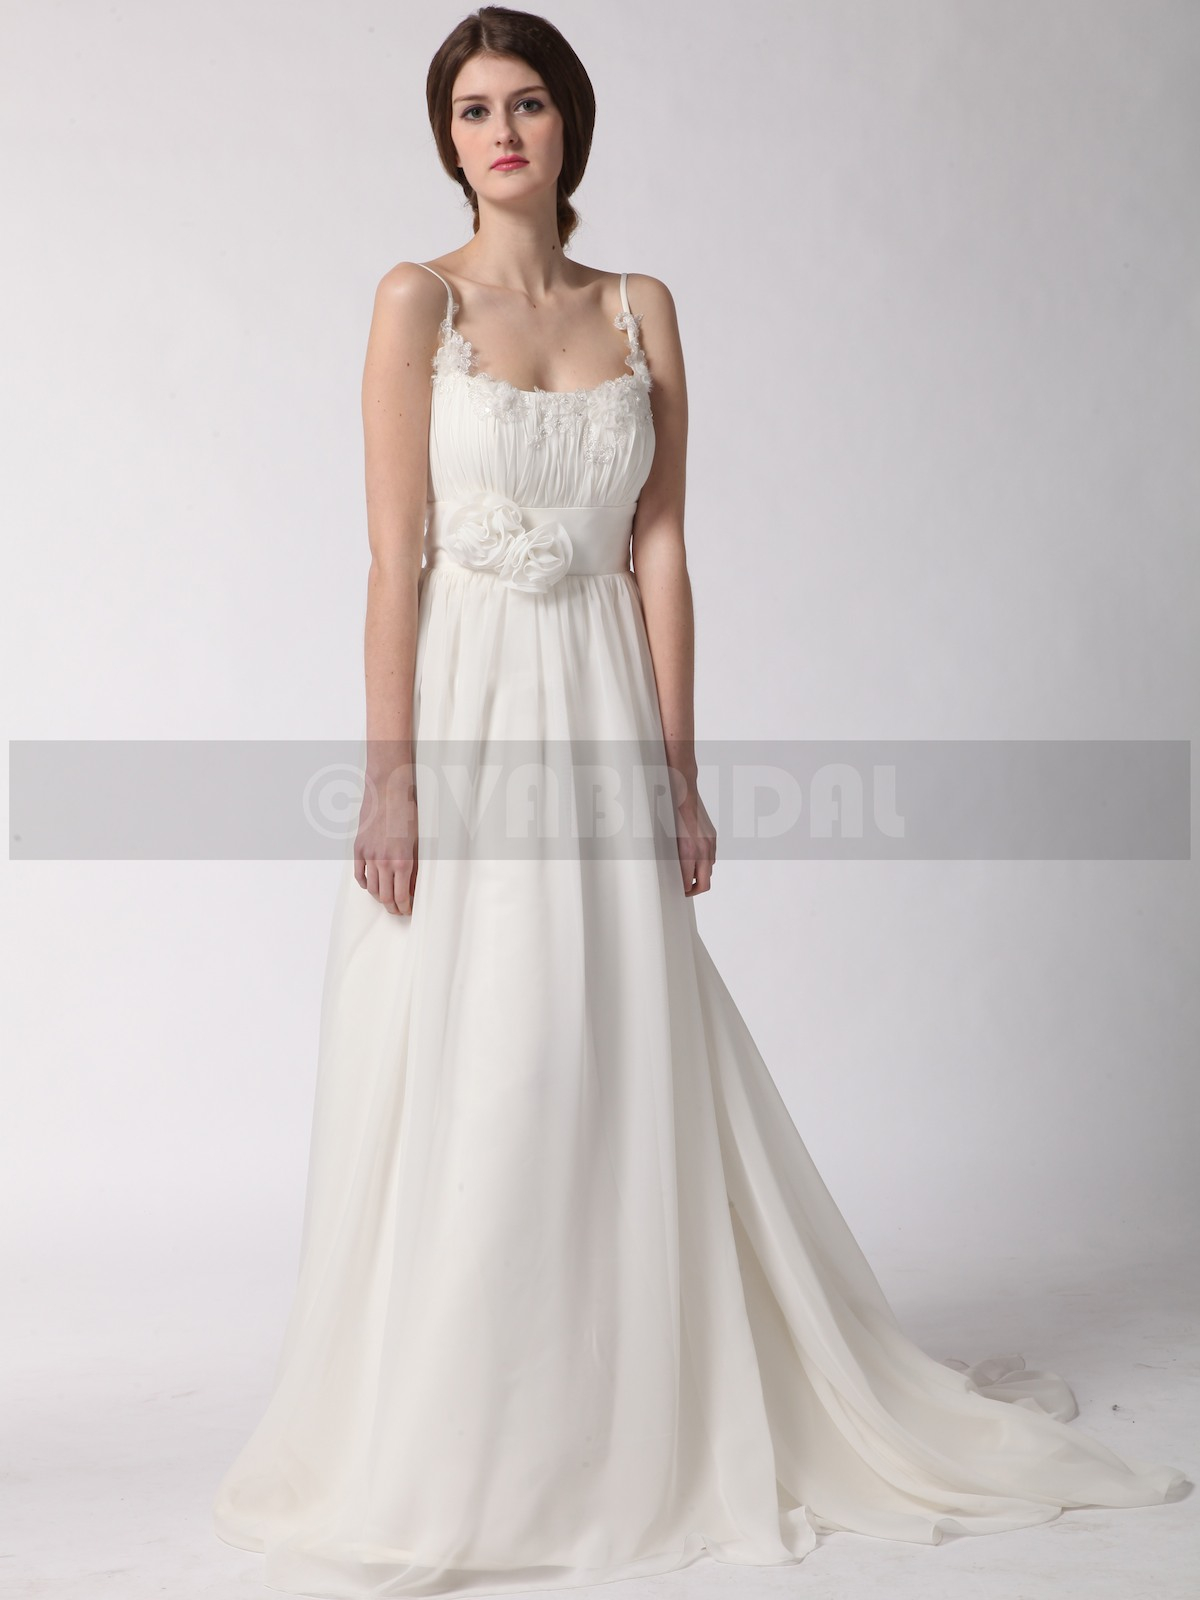 Grecian Goddess Wedding Dress - Delia | Ava Bridal